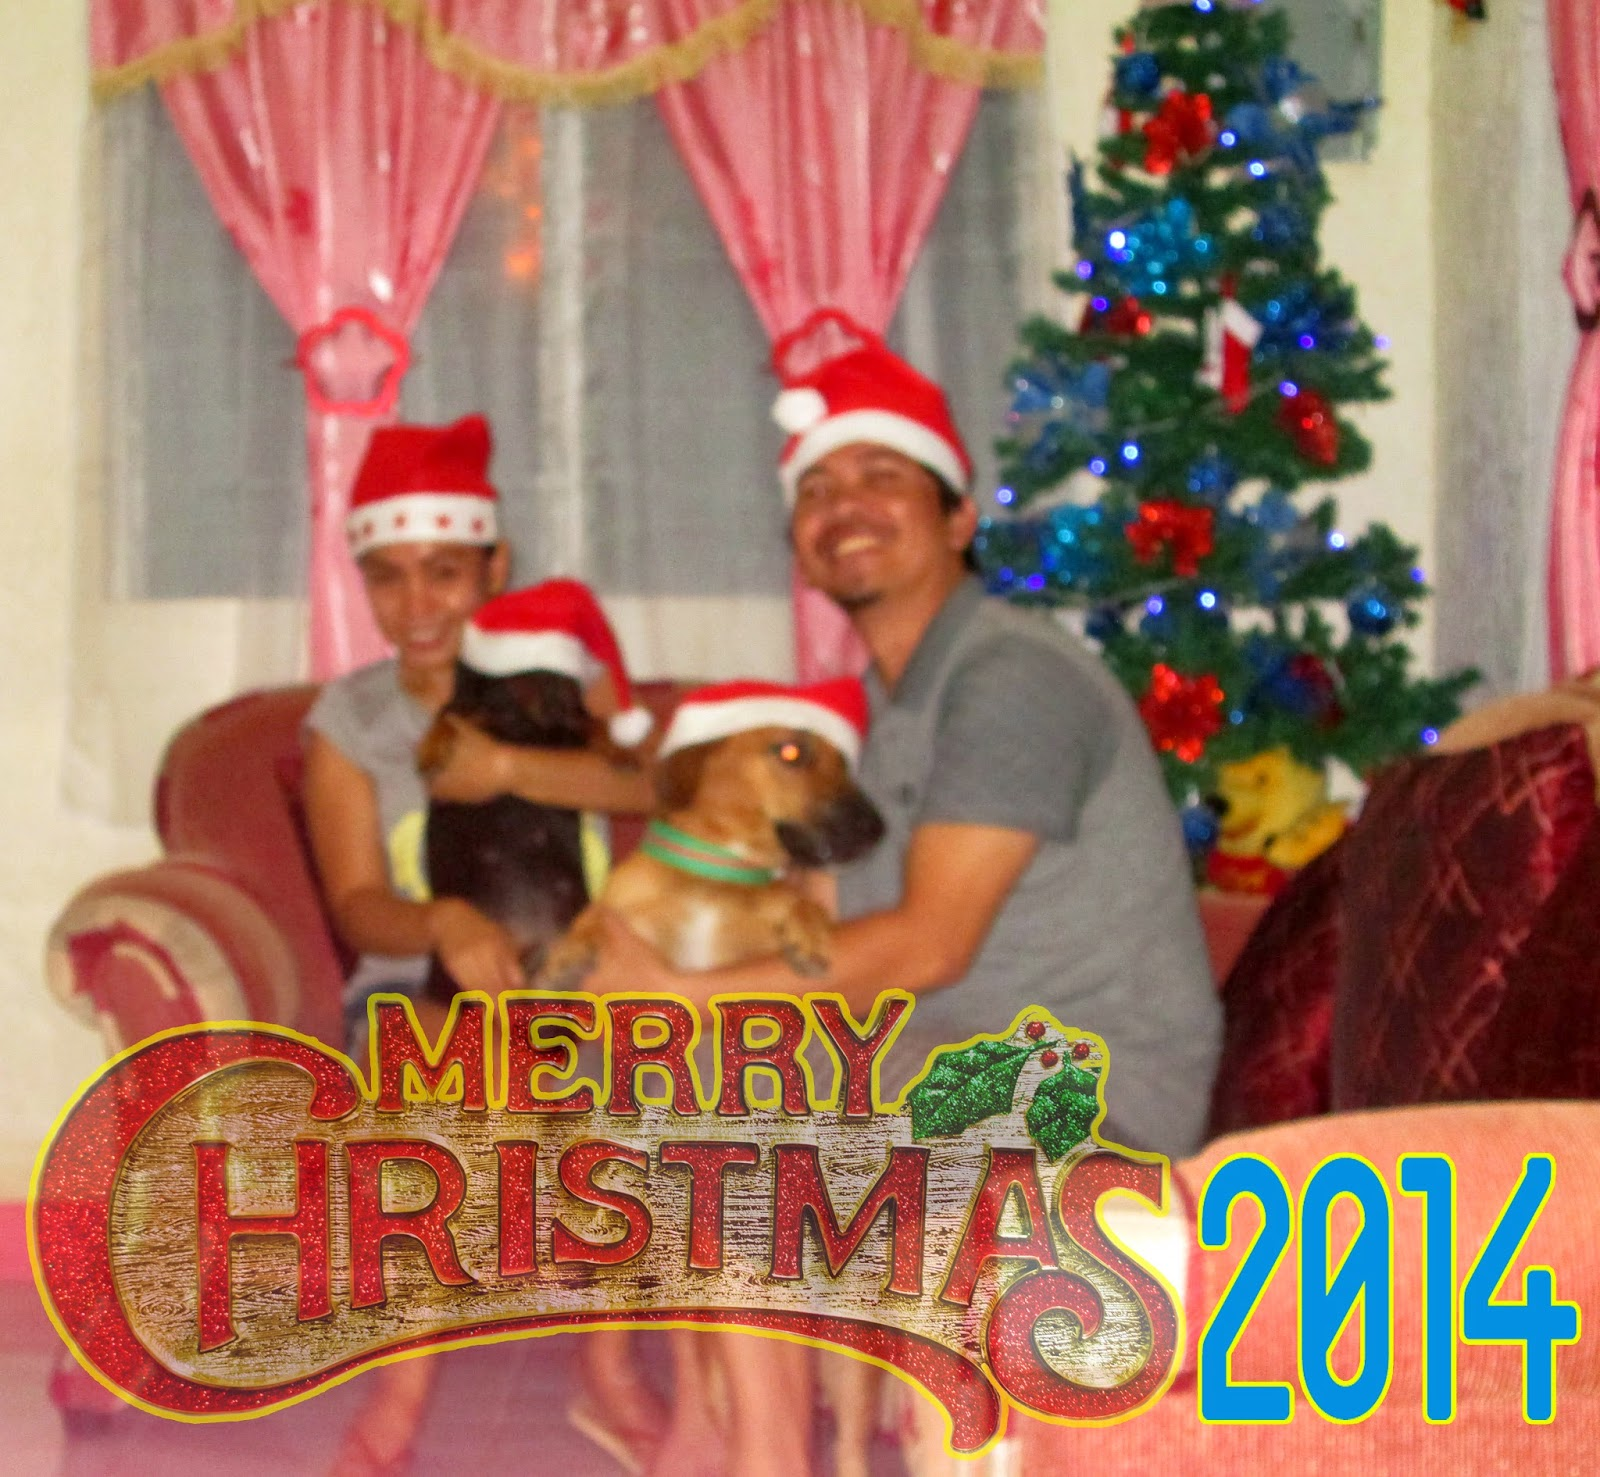 Mitchell Espina - Merry Christmas 2014